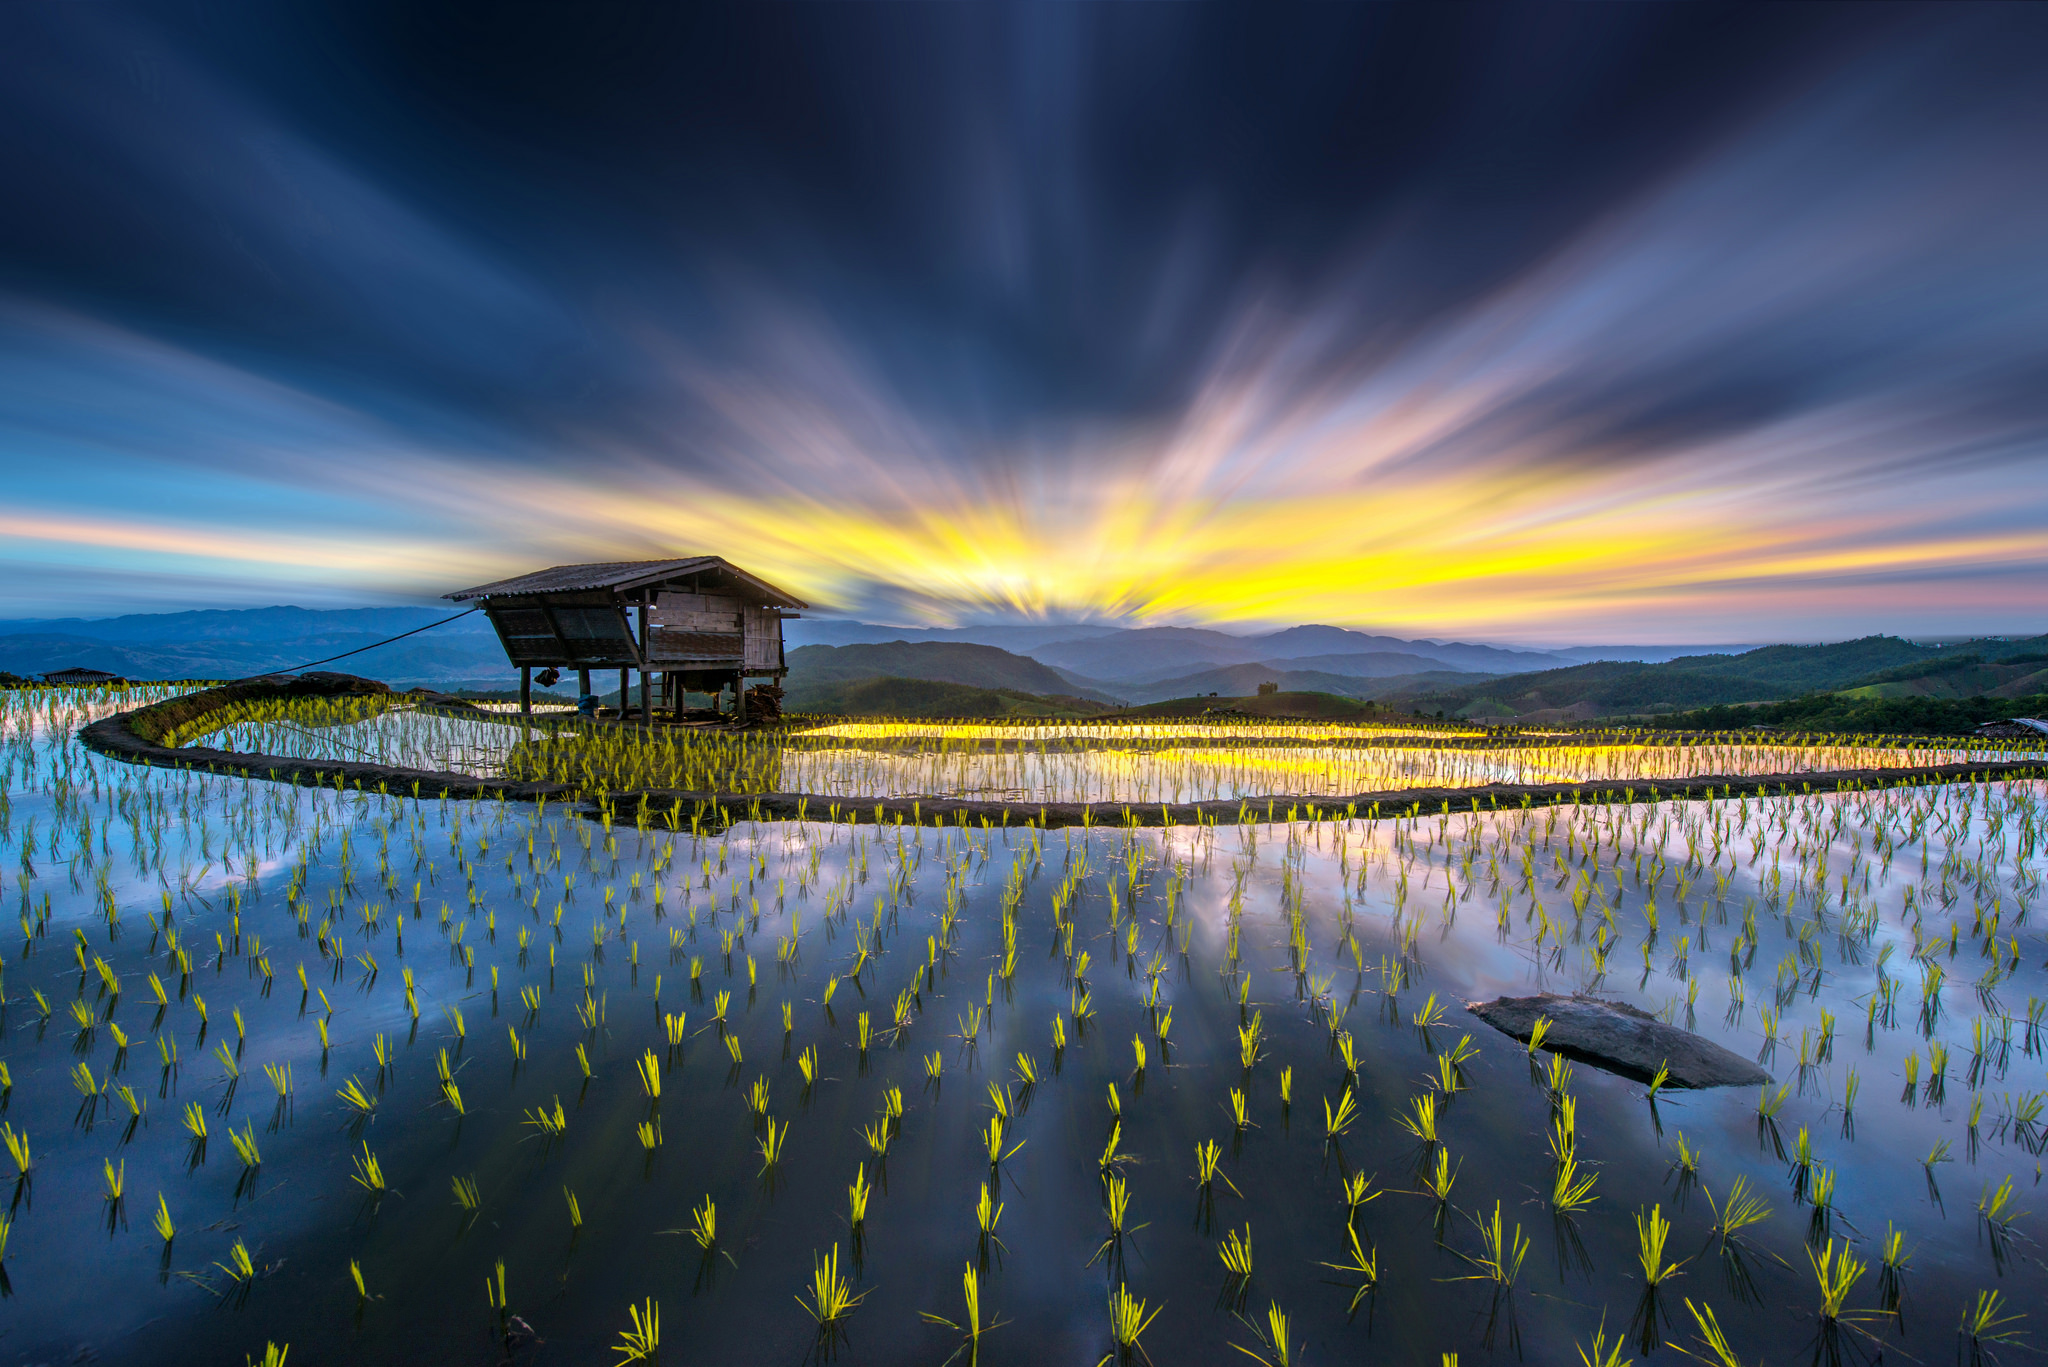 Guest Curator Sarawut Intarob Shares Four 500px Photos that Take His Breath Away